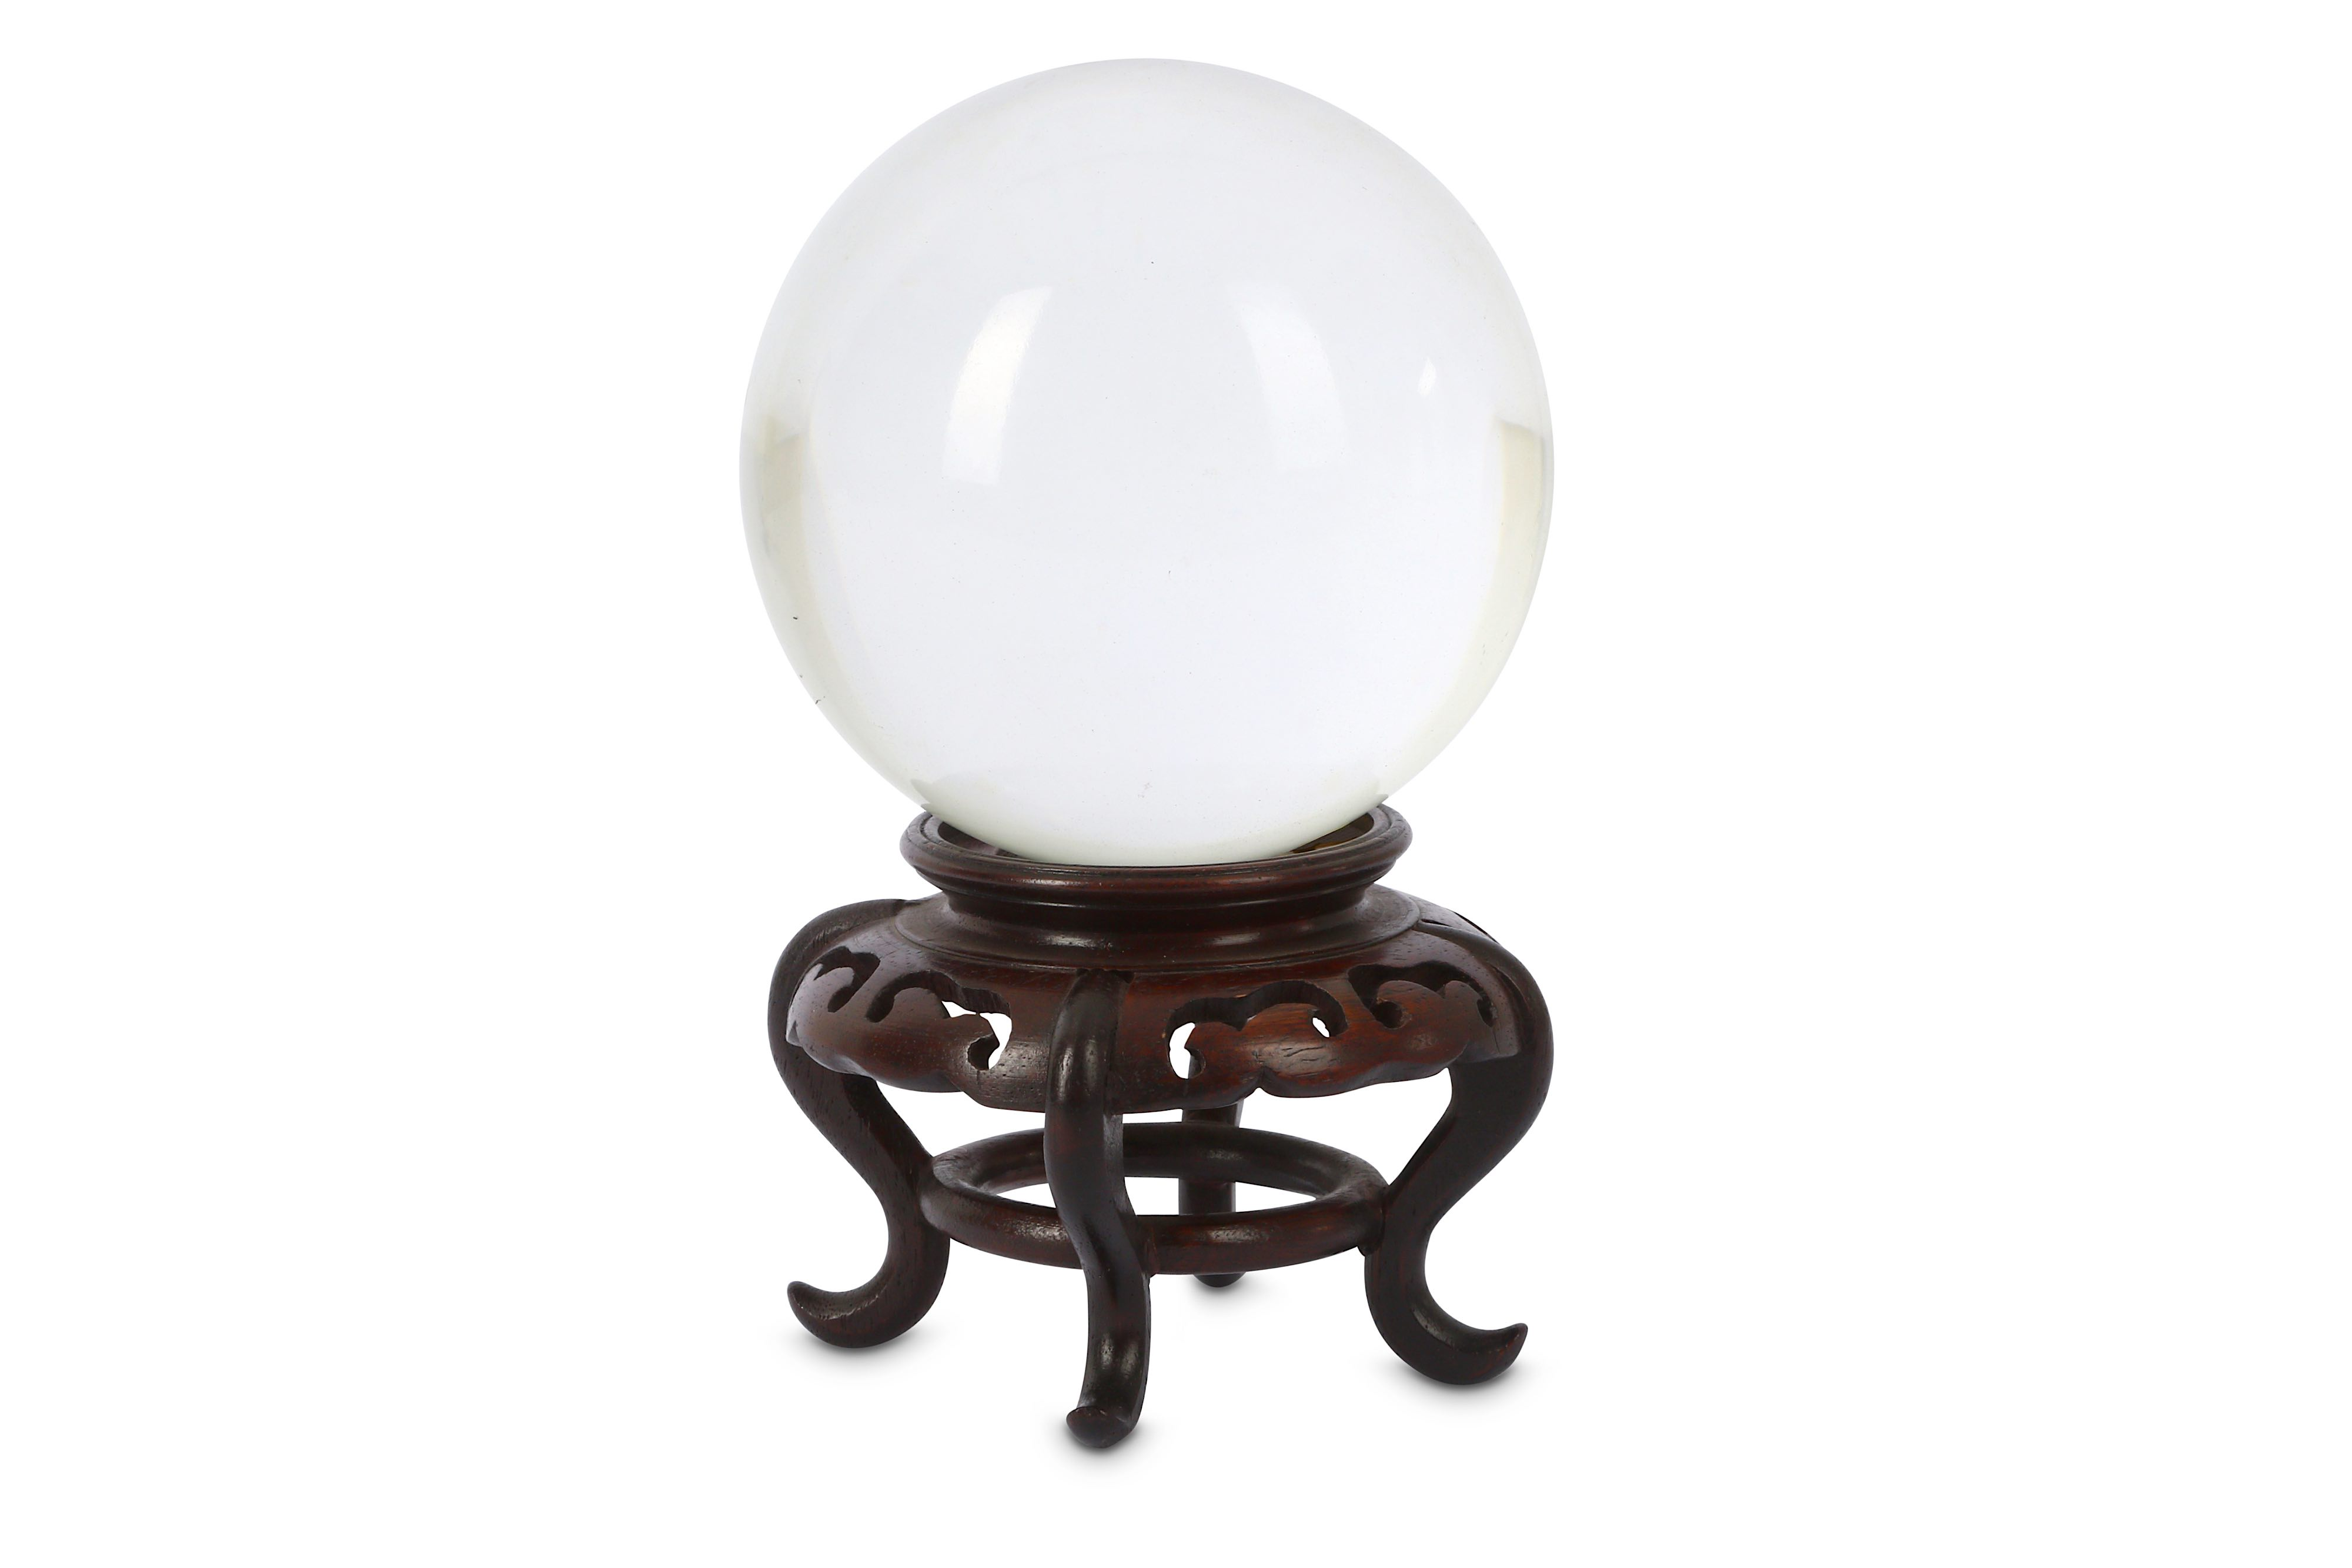 A LATE QING DYNASTY CHINESE CRYSTAL BALL.